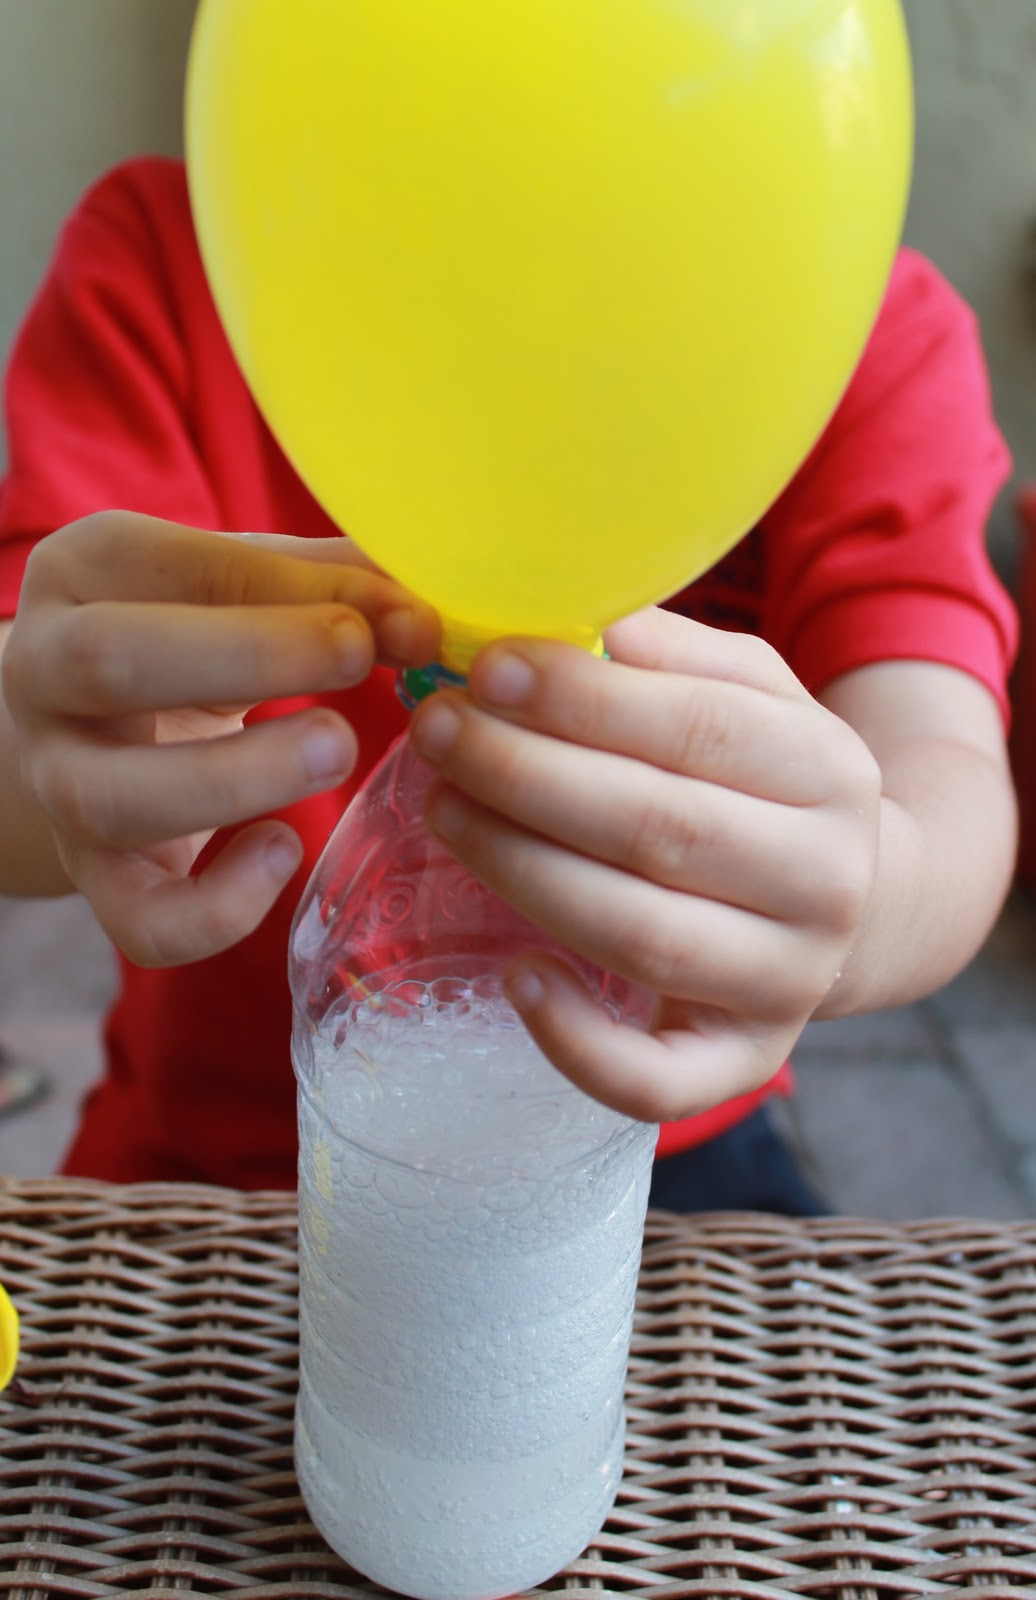 Blowing up Balloons with vinegar and baking soda